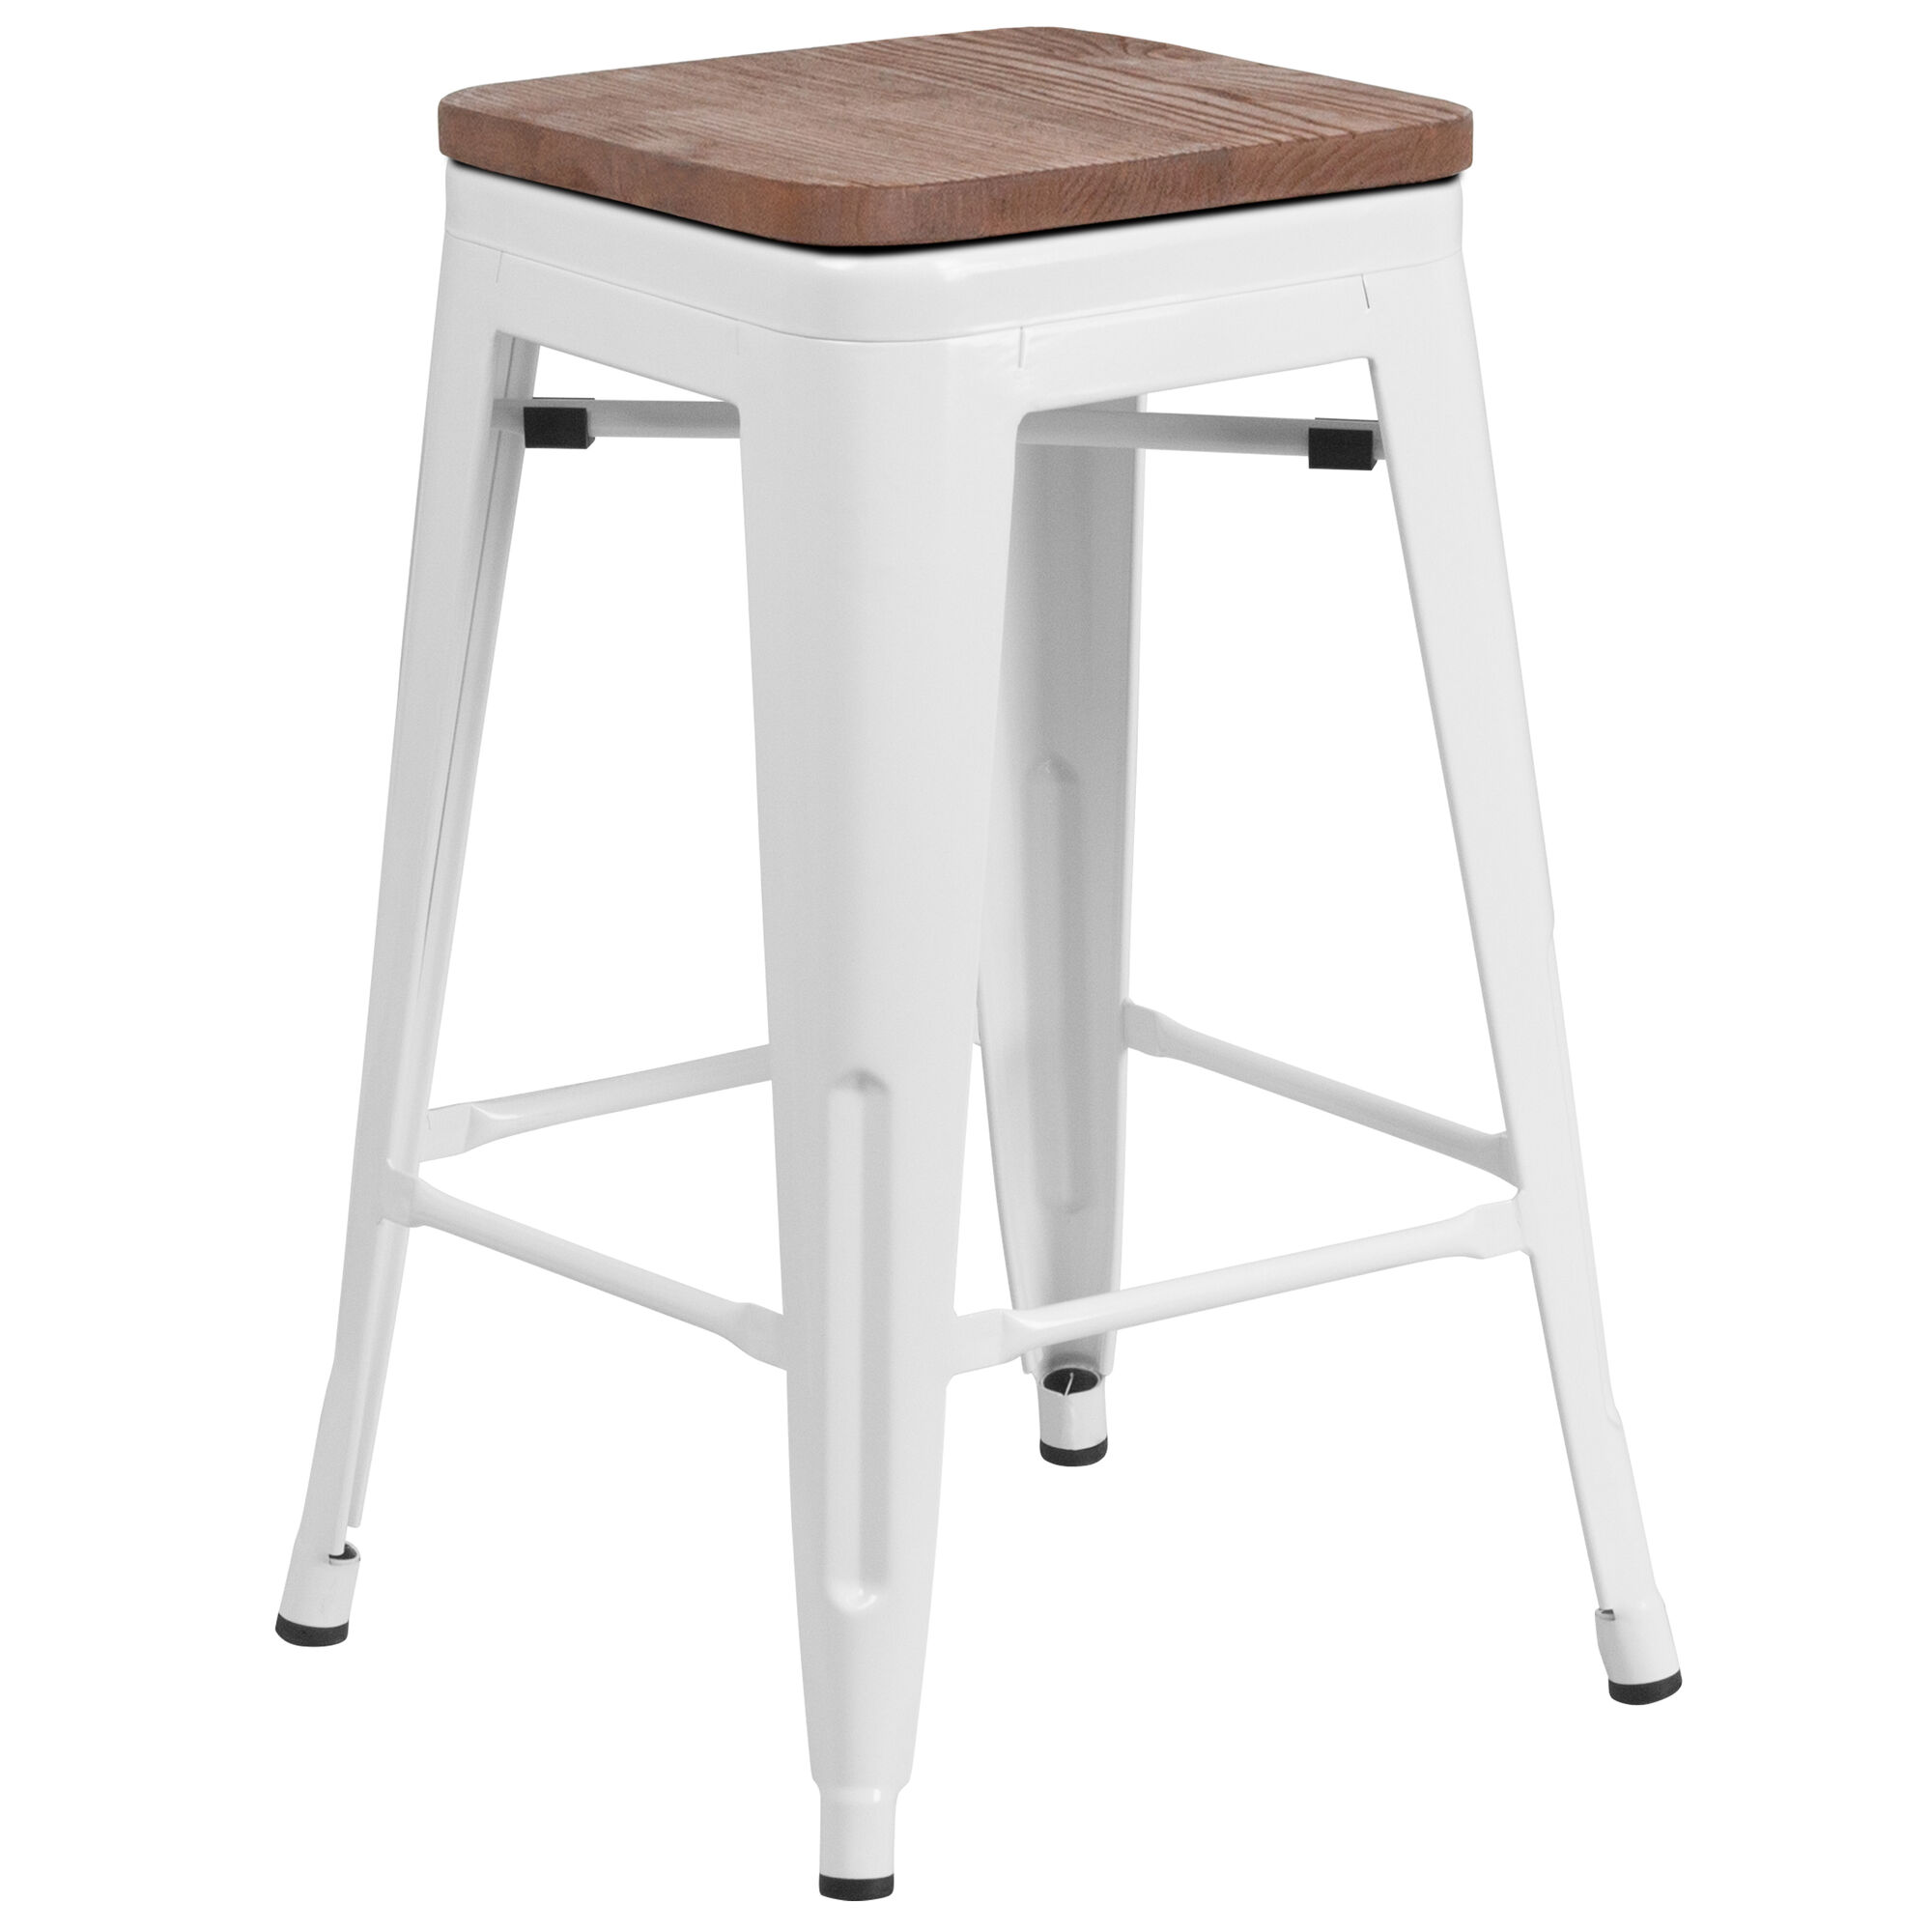 Peachy 24 High Backless White Metal Counter Height Stool With Square Wood Seat Pdpeps Interior Chair Design Pdpepsorg